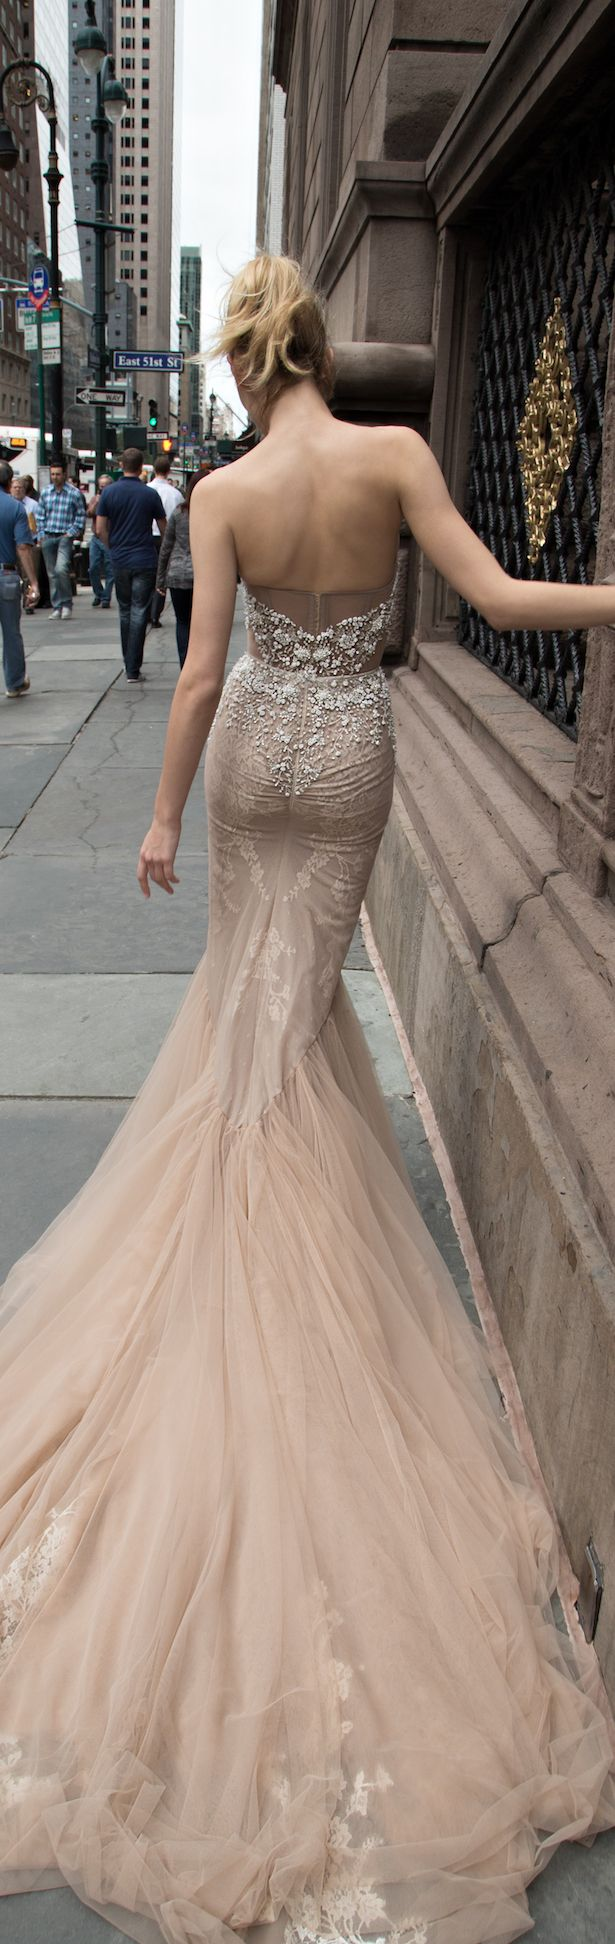 Leather wedding dress  Inbal Dror  Bridal Collection  Wedding Dresses  Pinterest